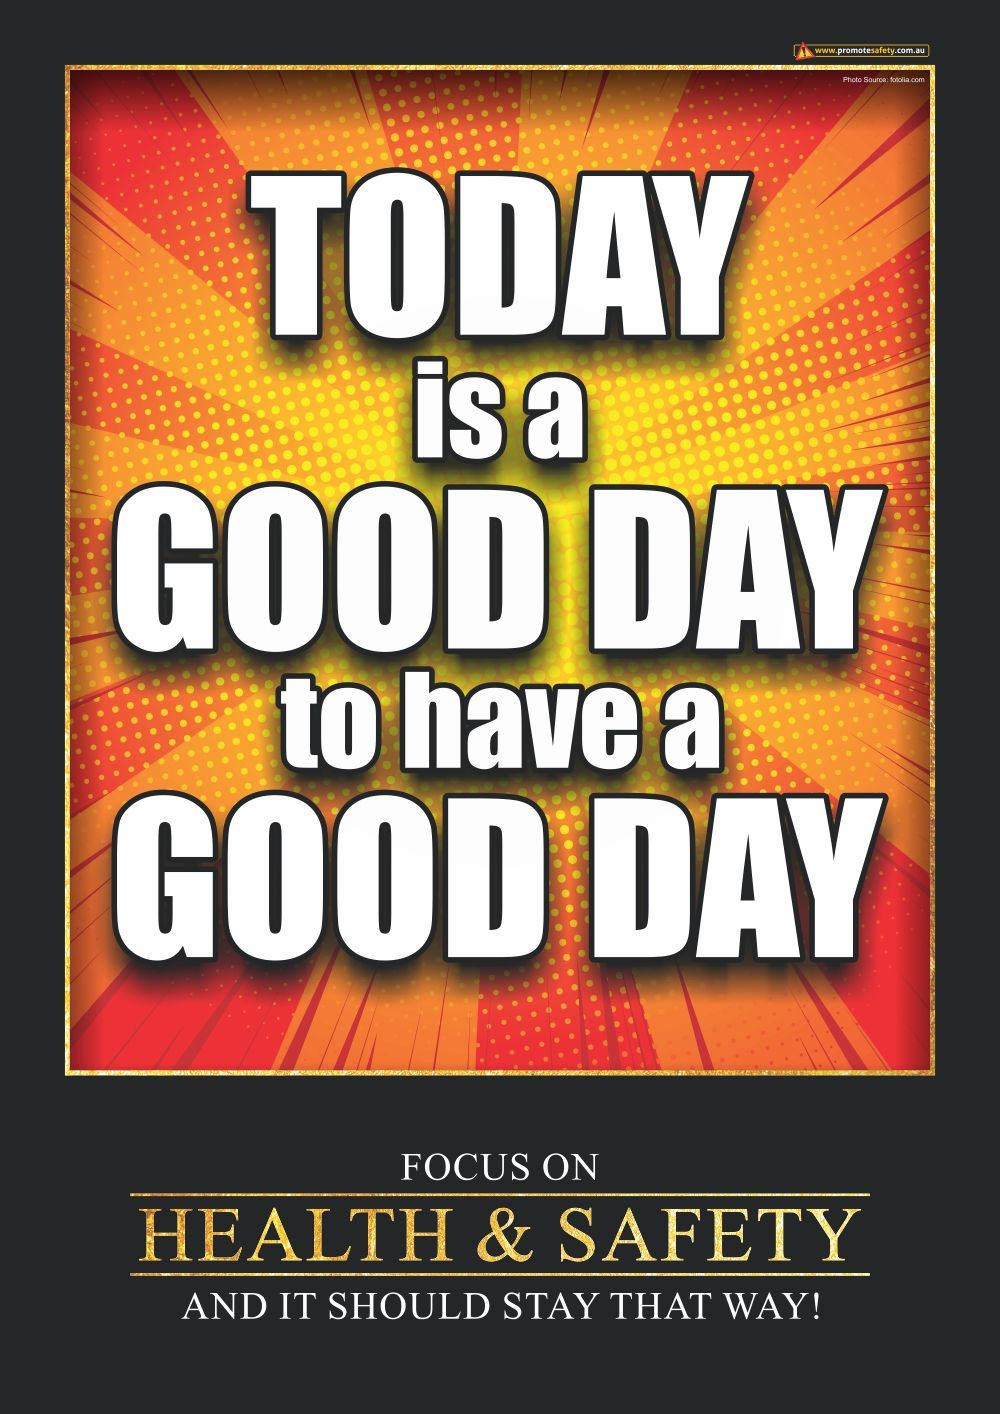 Today is a Good Day to have a Good Day Poster. A positive